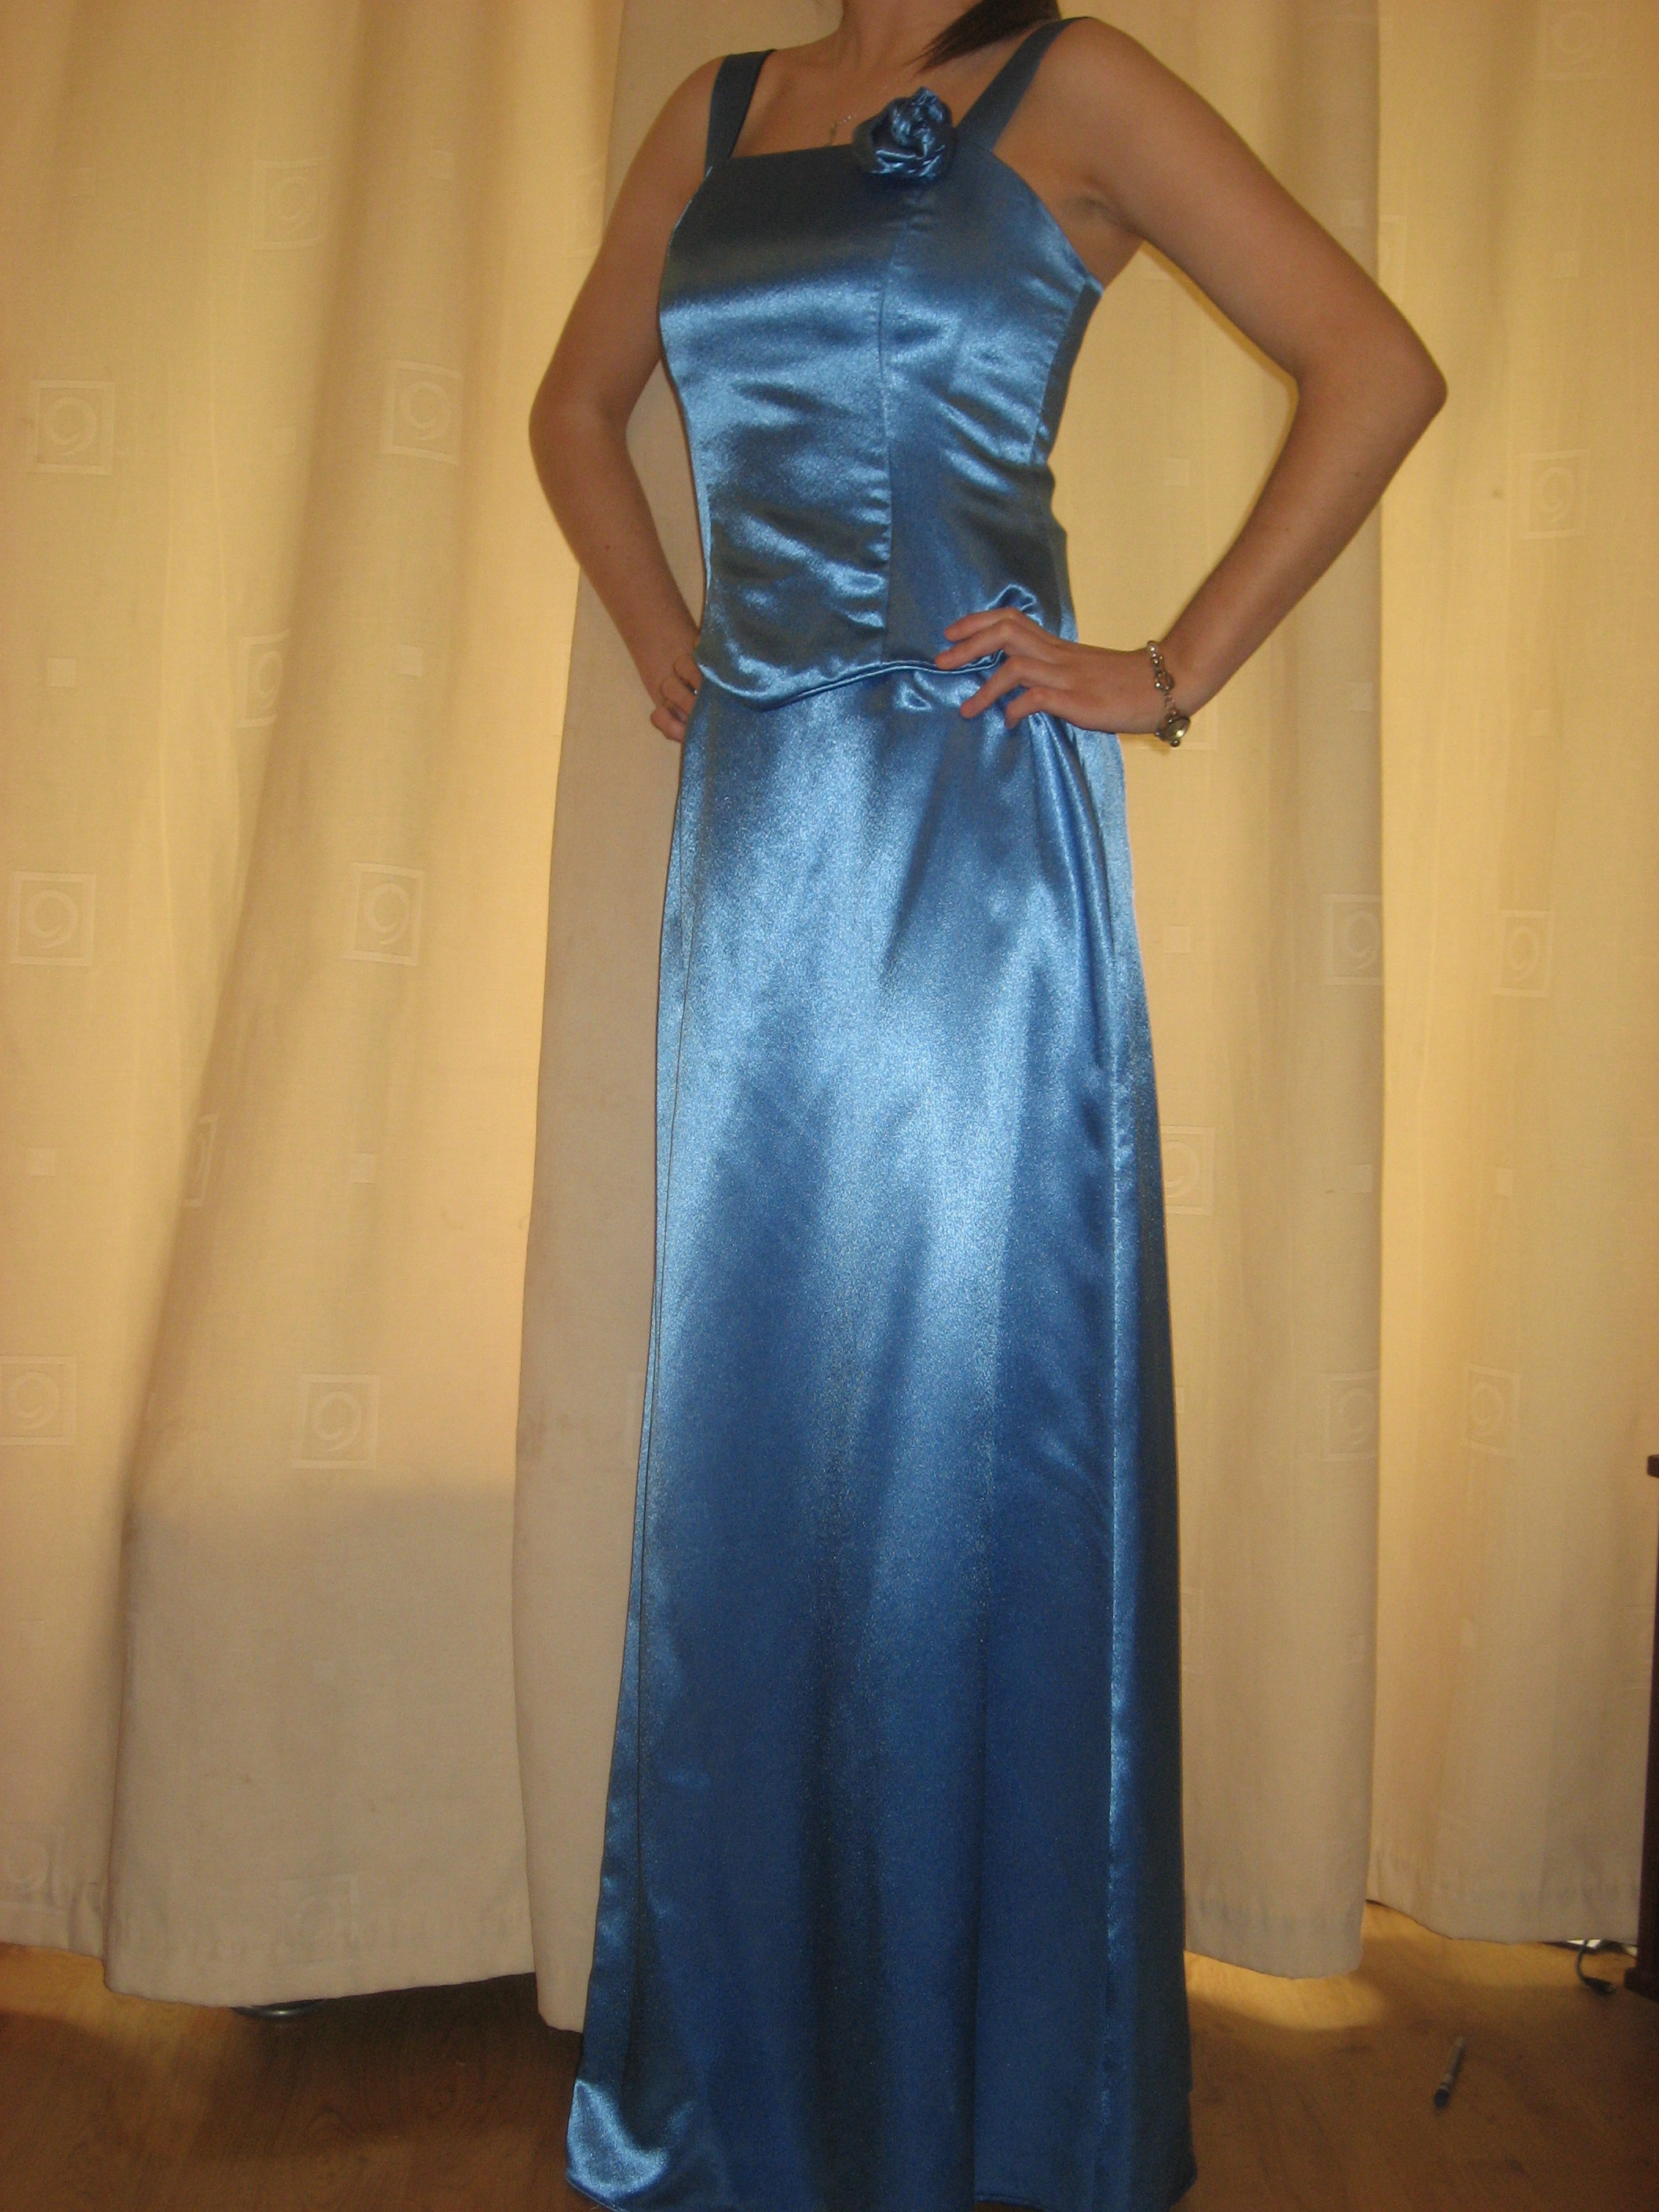 Blue Dress - Size 12 - 6JO